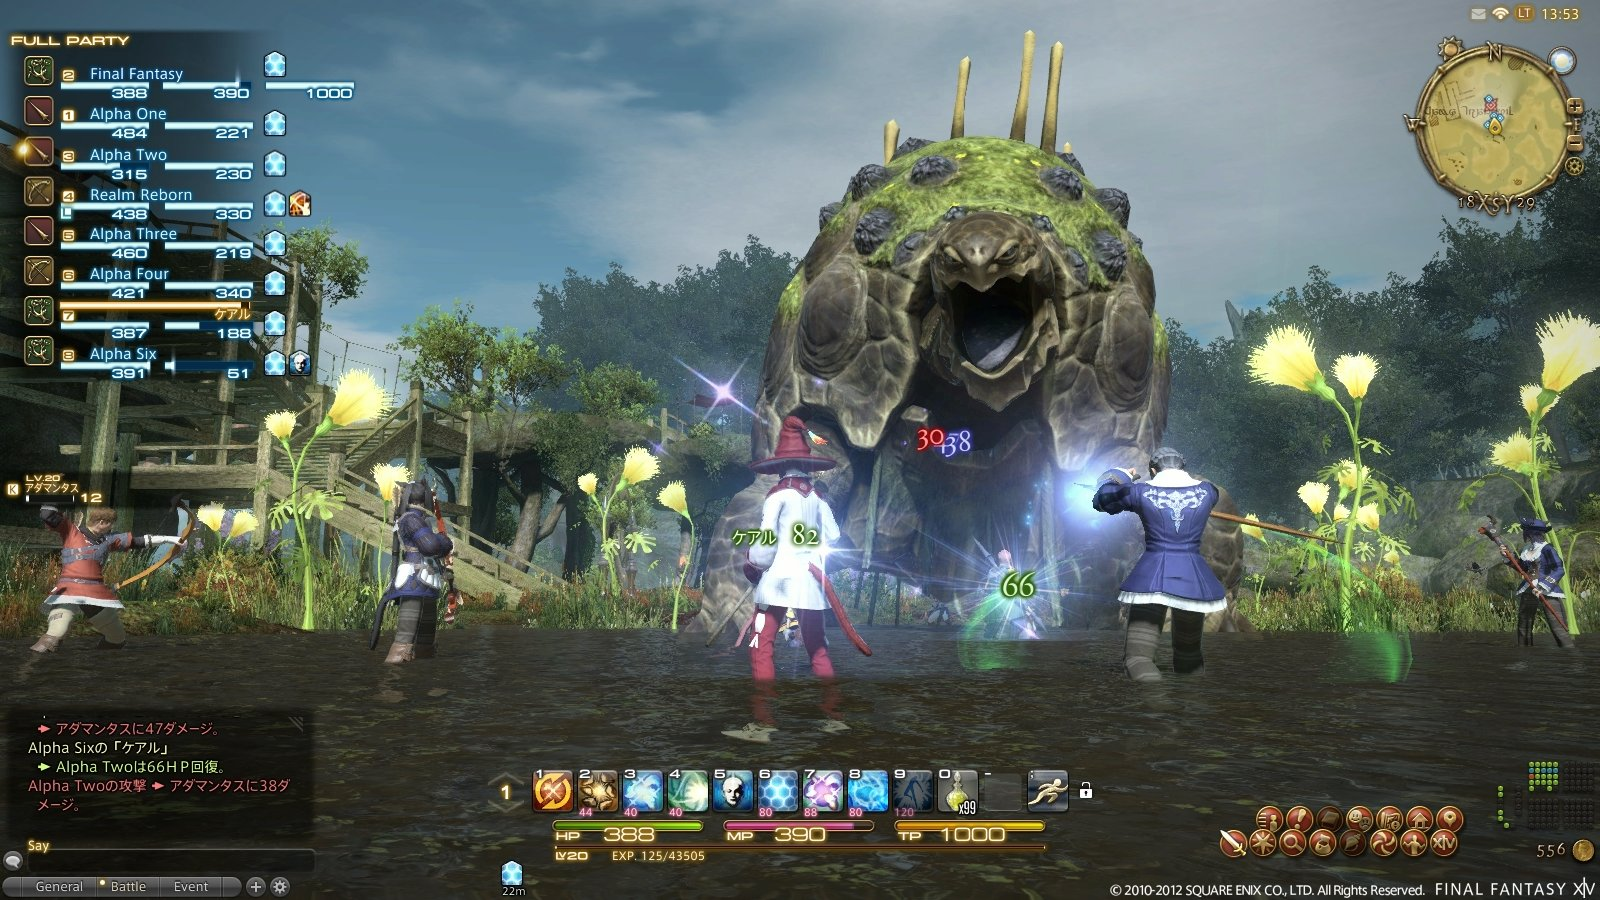 Final Fantasy 14 gameplay